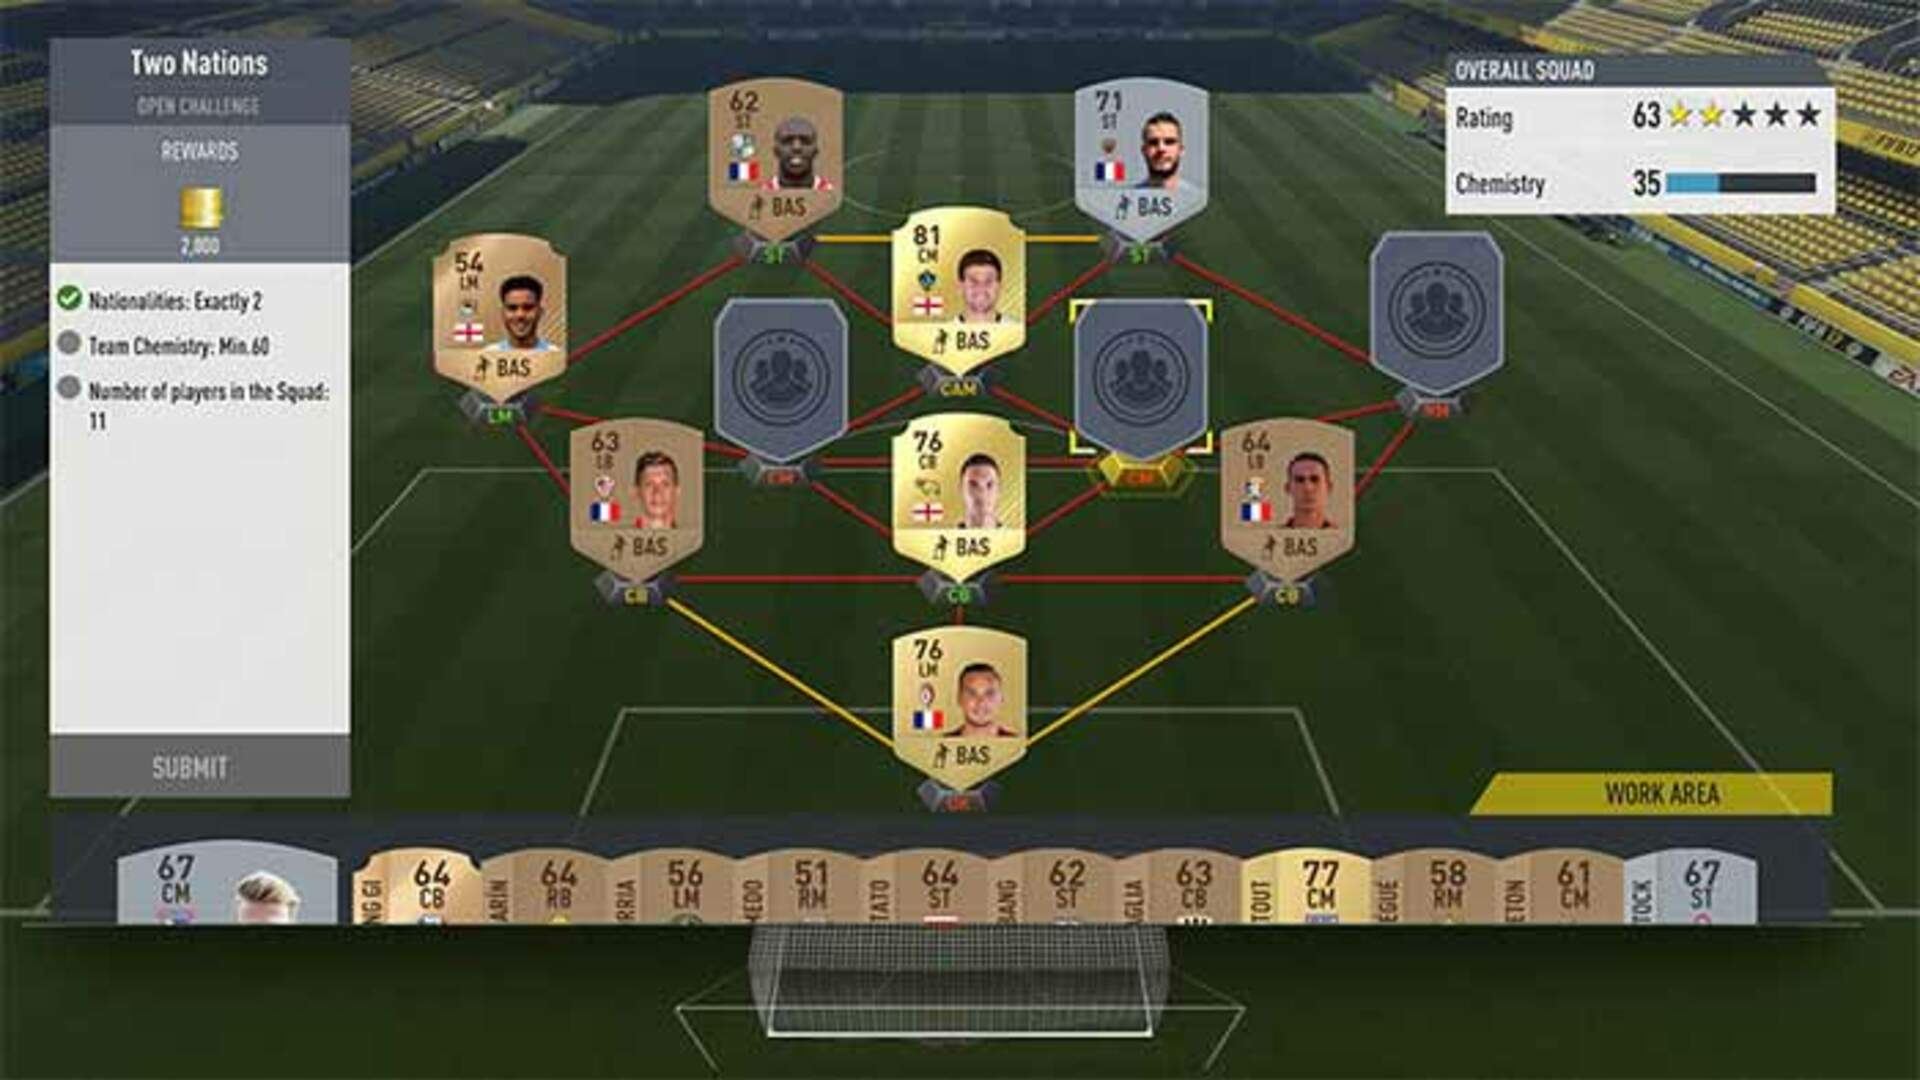 FIFA 17 Ultimate Team - Get the perfect line-up, and good team chemistry and fitness